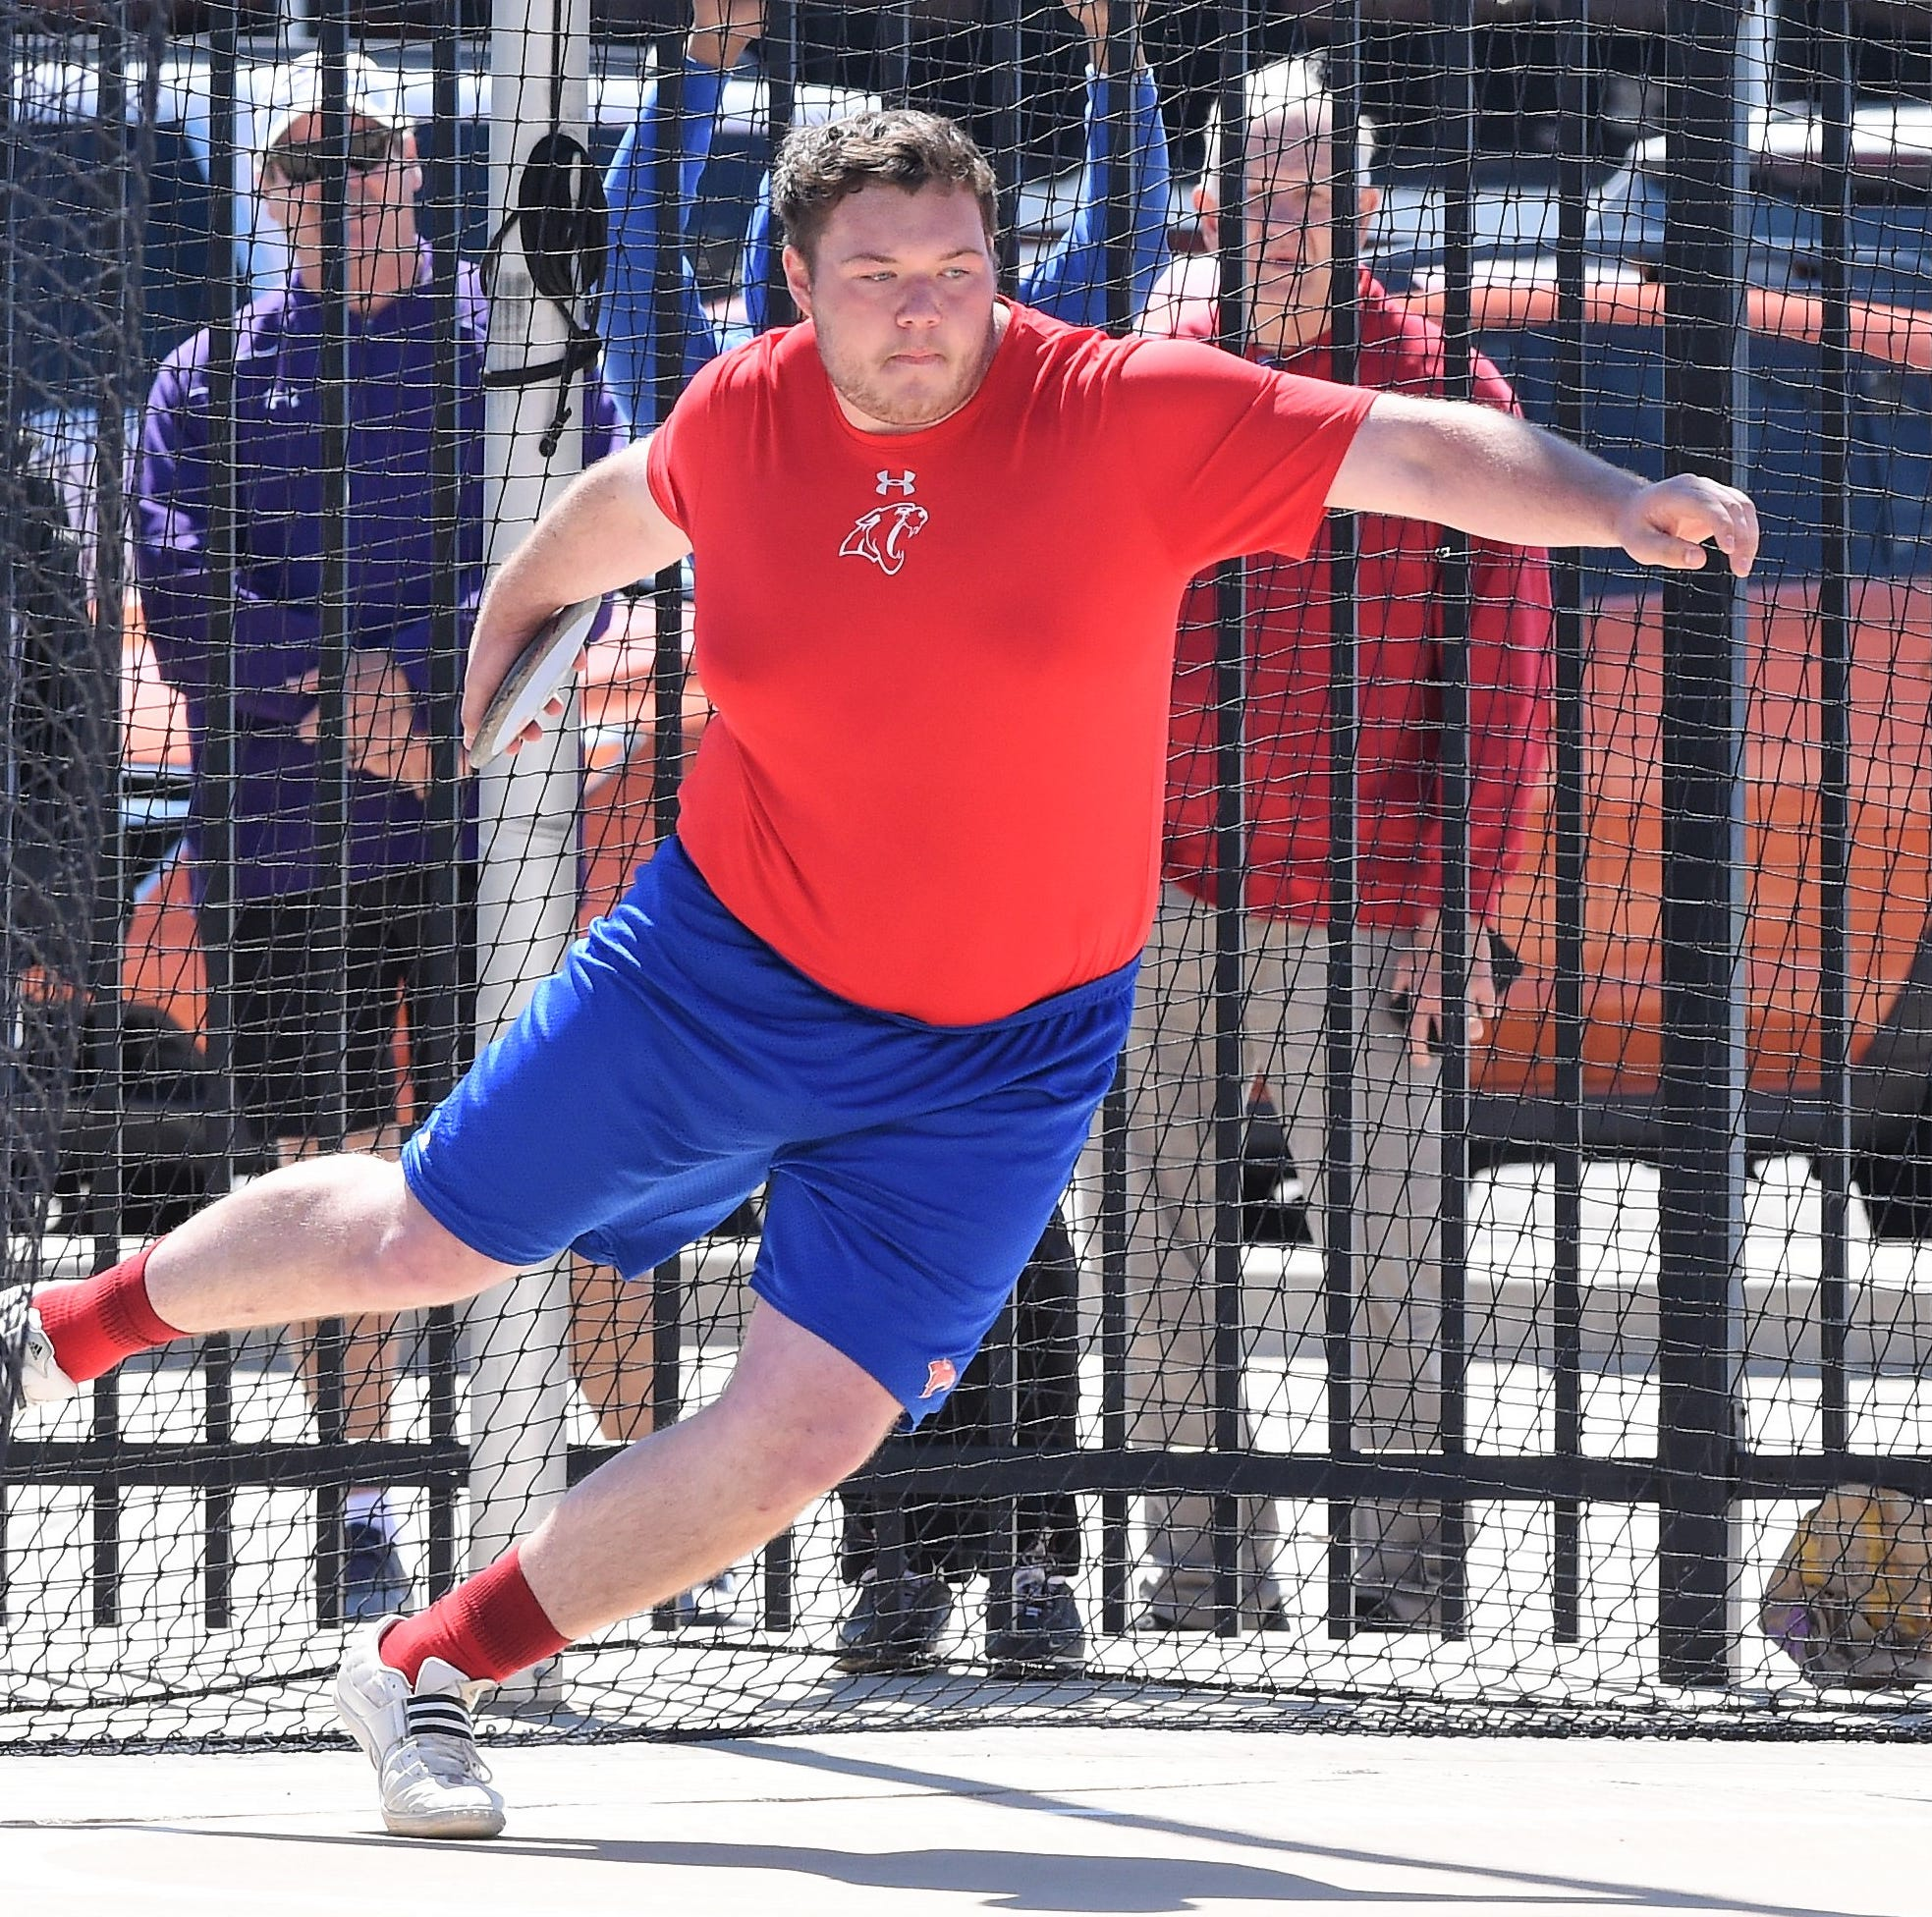 Abilene Cooper's Whitaker, Sloan have memorable area track meet along with Wylie's Latham